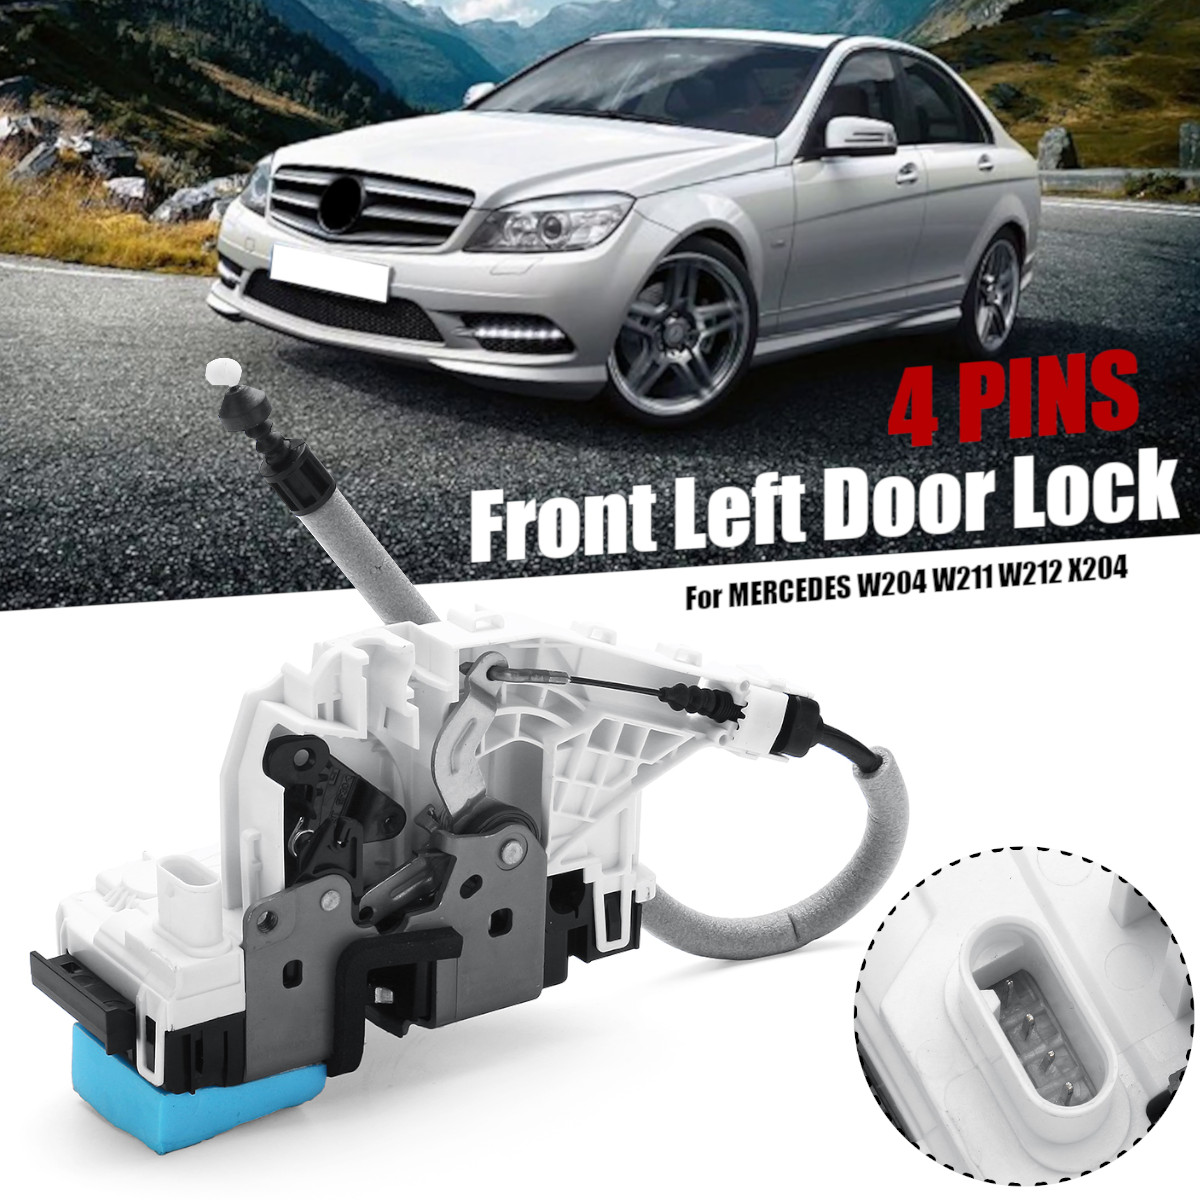 A2047201535 2047201535 CAR FRONT LEFT DOOR LOCK For MERCEDES W204 W211 W212 X204 2007 2014-in Locks & Hardware from Automobiles & Motorcycles    1